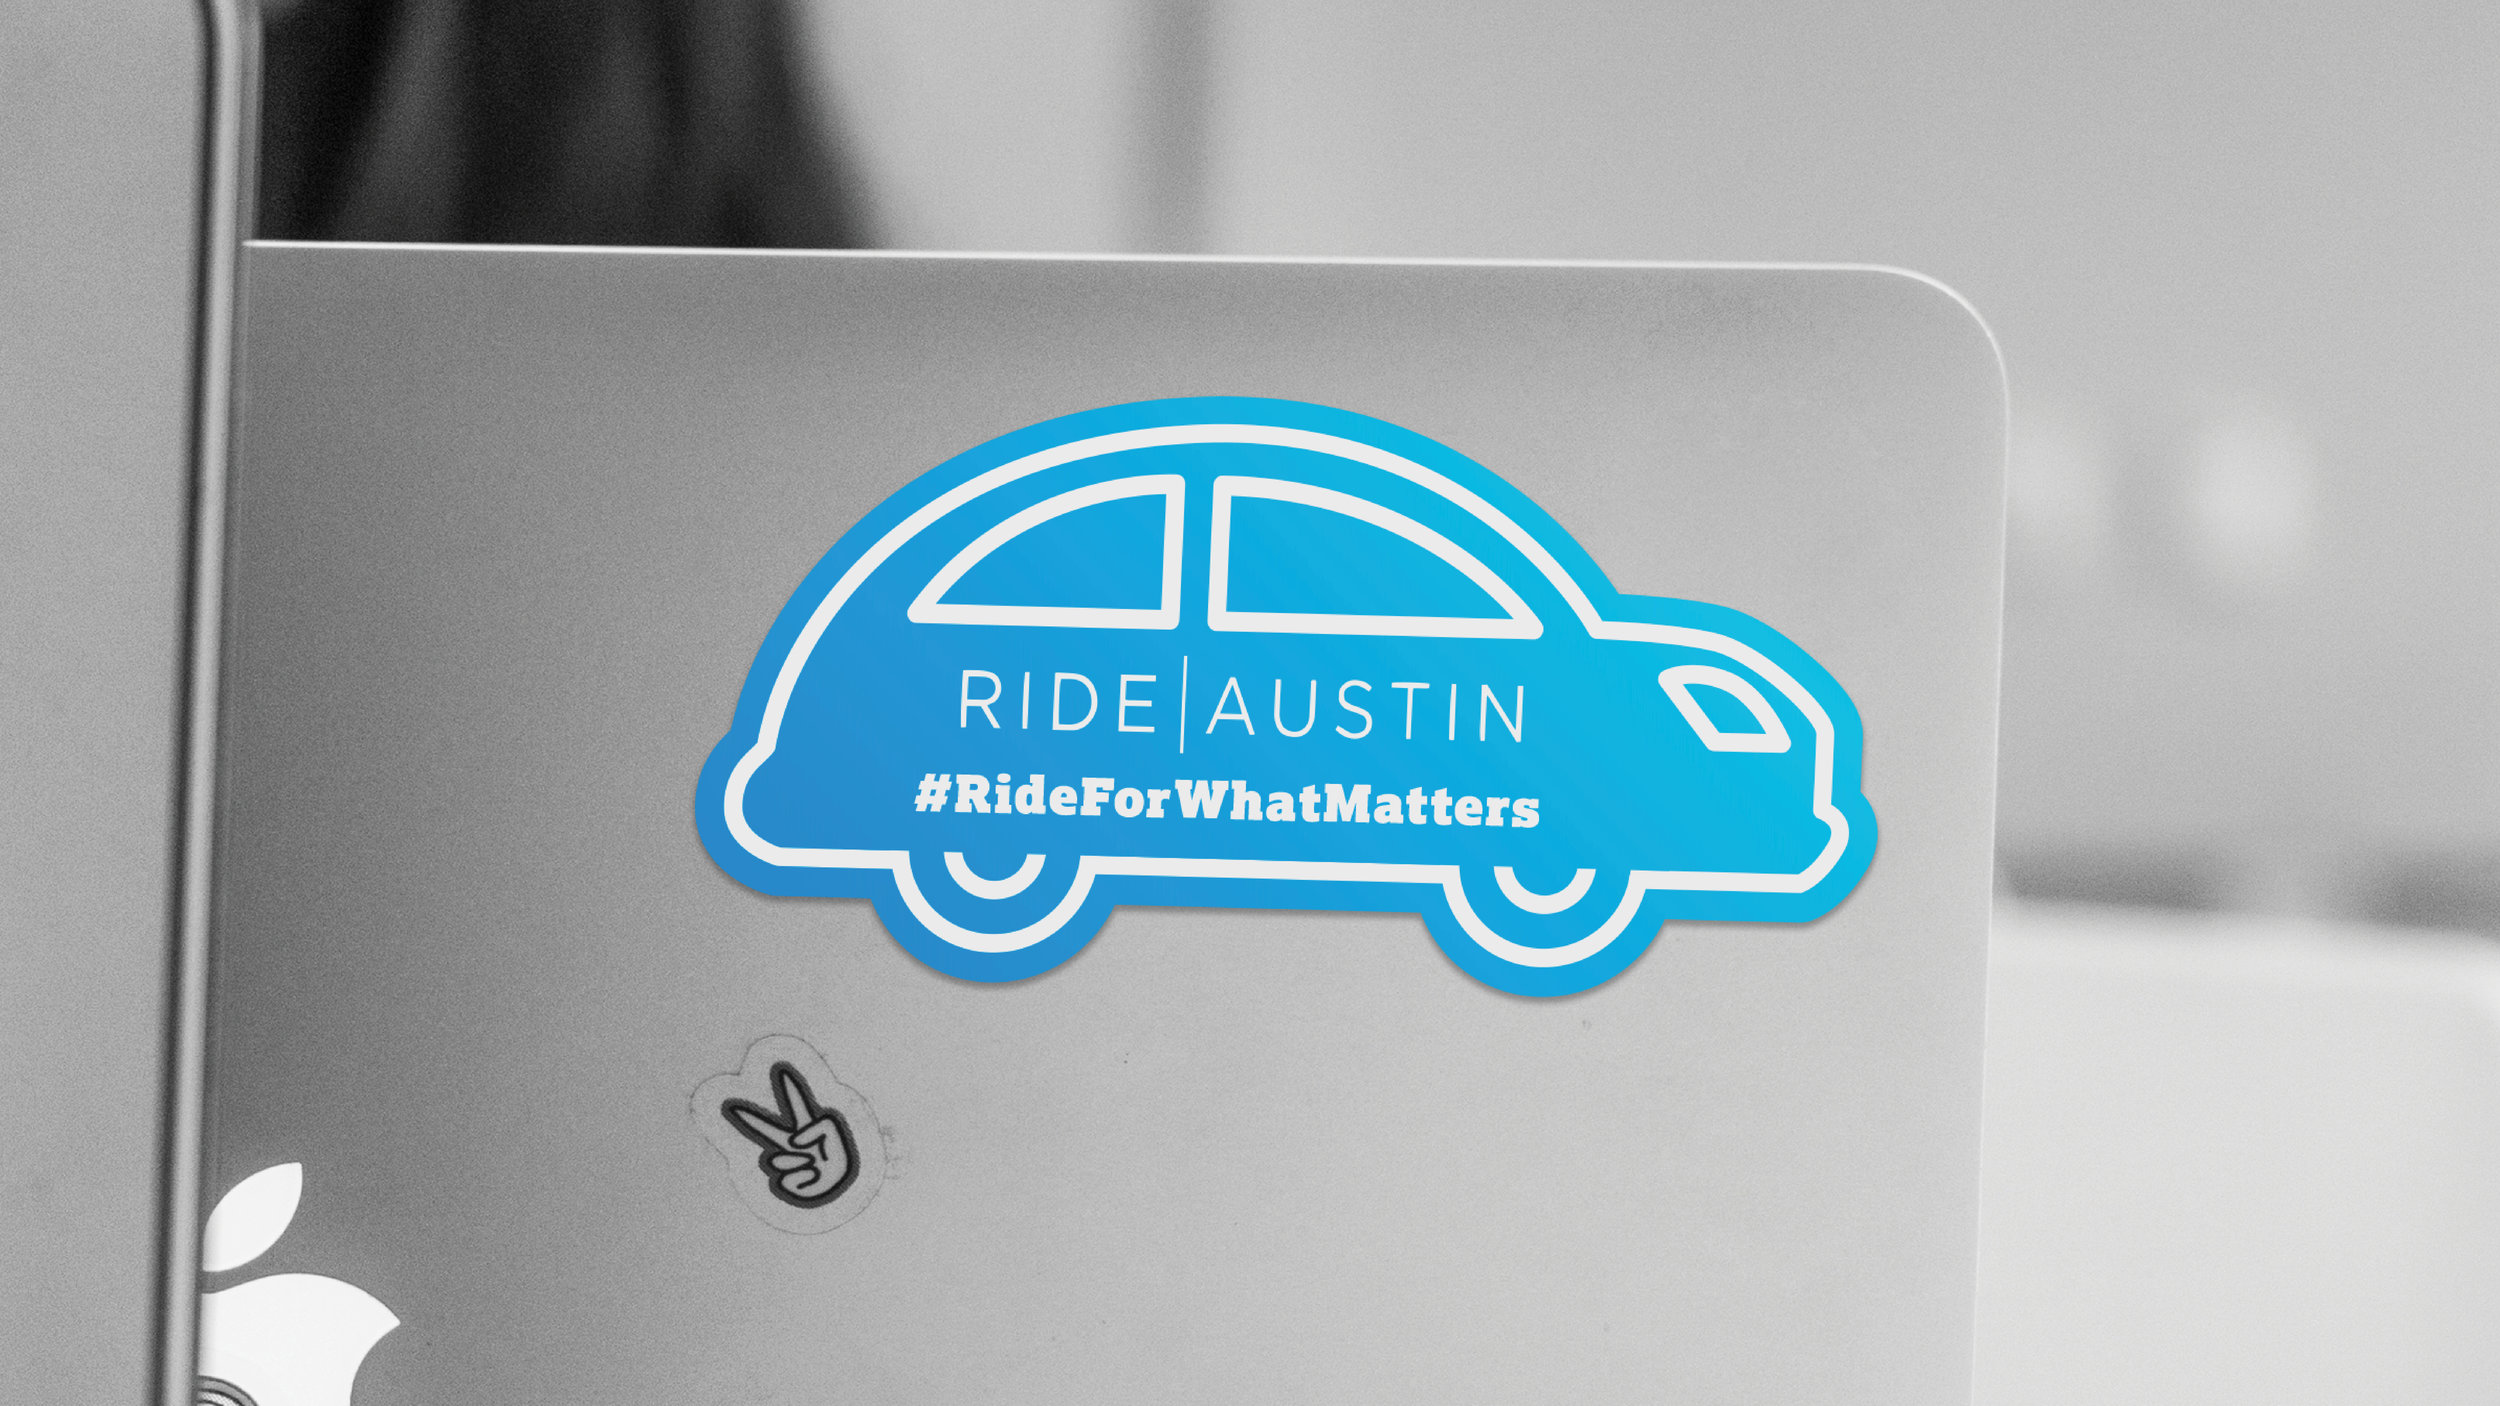 We designed custom stickers for RideAustin to pass out at events.